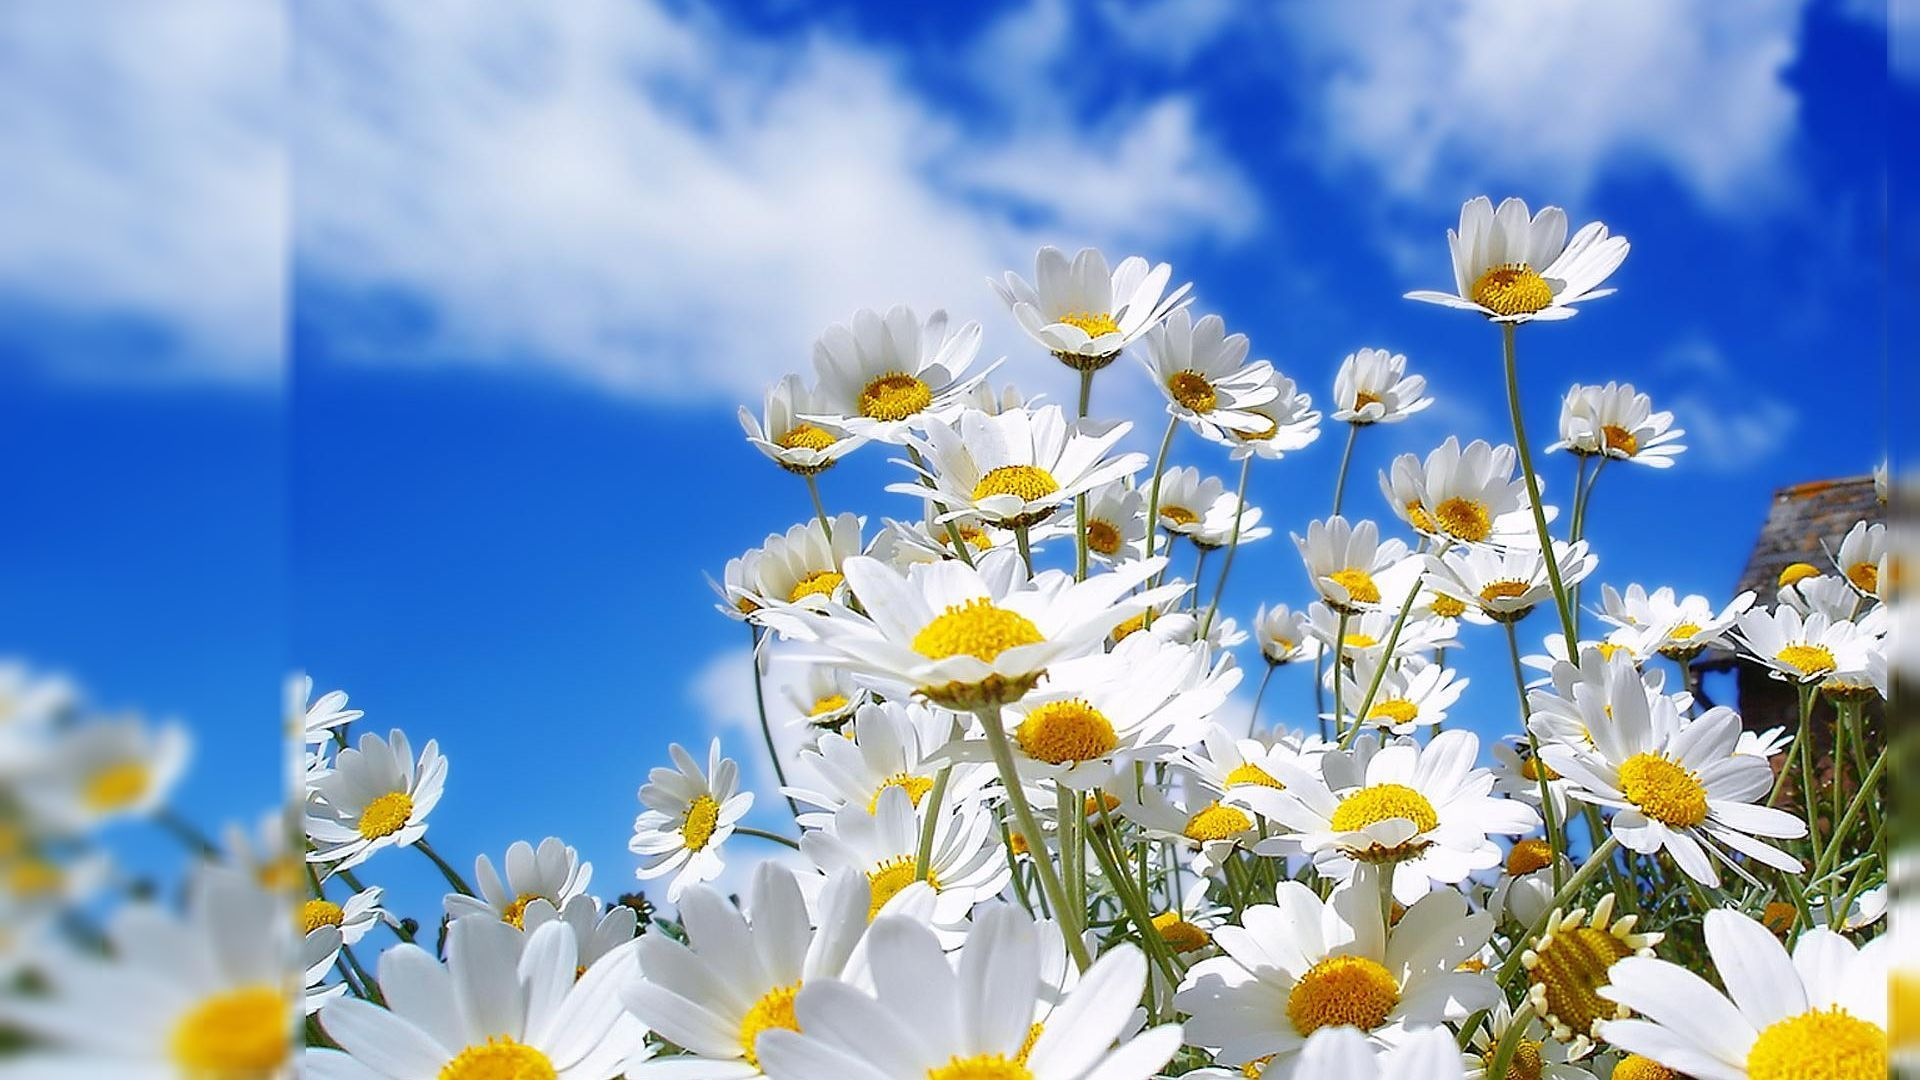 Floral Desktop Wallpapers Hd Wallpapers Backgrounds Of Your Choice